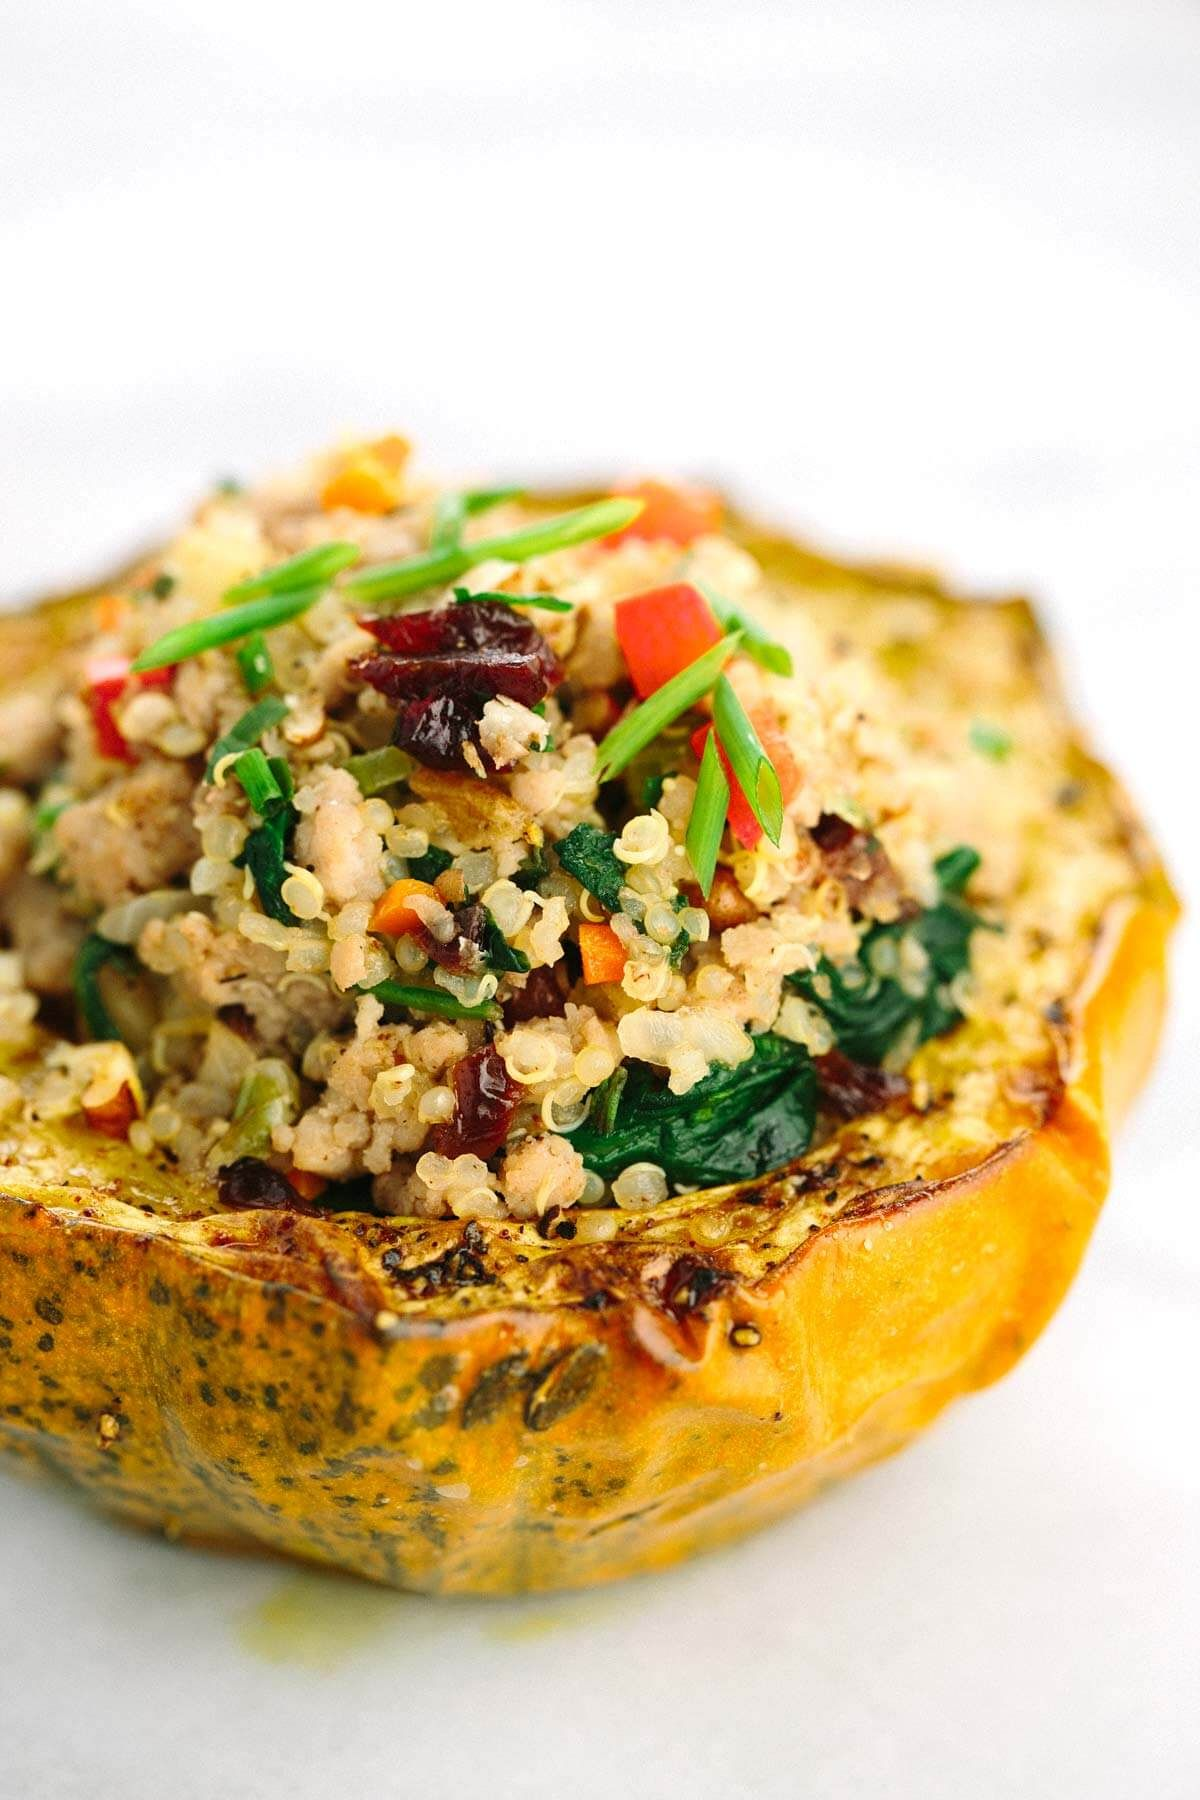 Stuffed Acorn Squash With Ground Turkey Recipe Acorn Squash